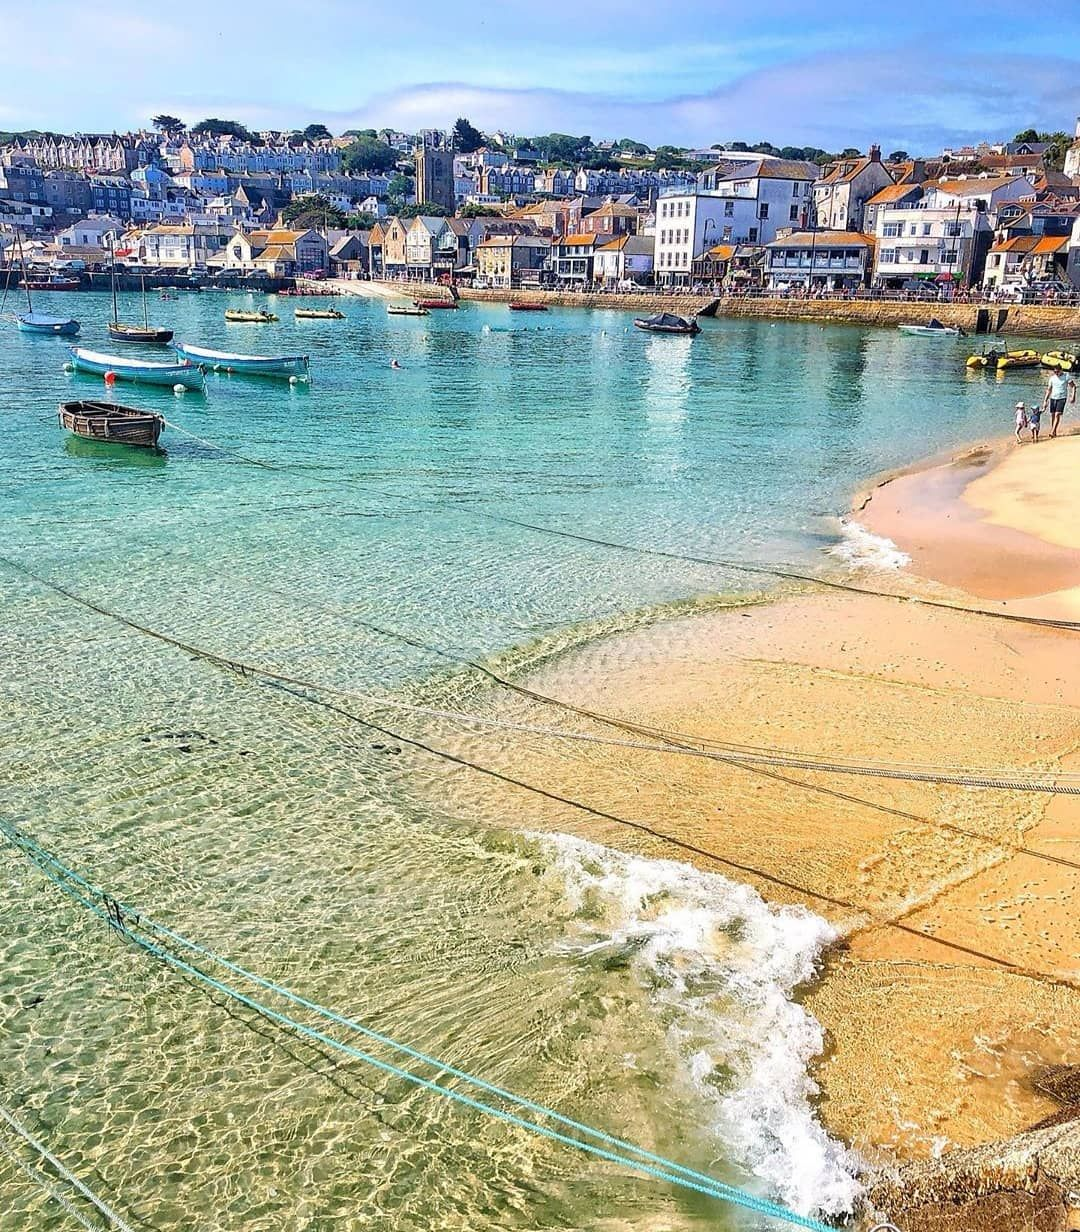 B R I T I S H S E A S I D E S On Instagram S T I V E S Cornwall Wowsers Cornwall Beaches Things To Do In Cornwall Cornwall England